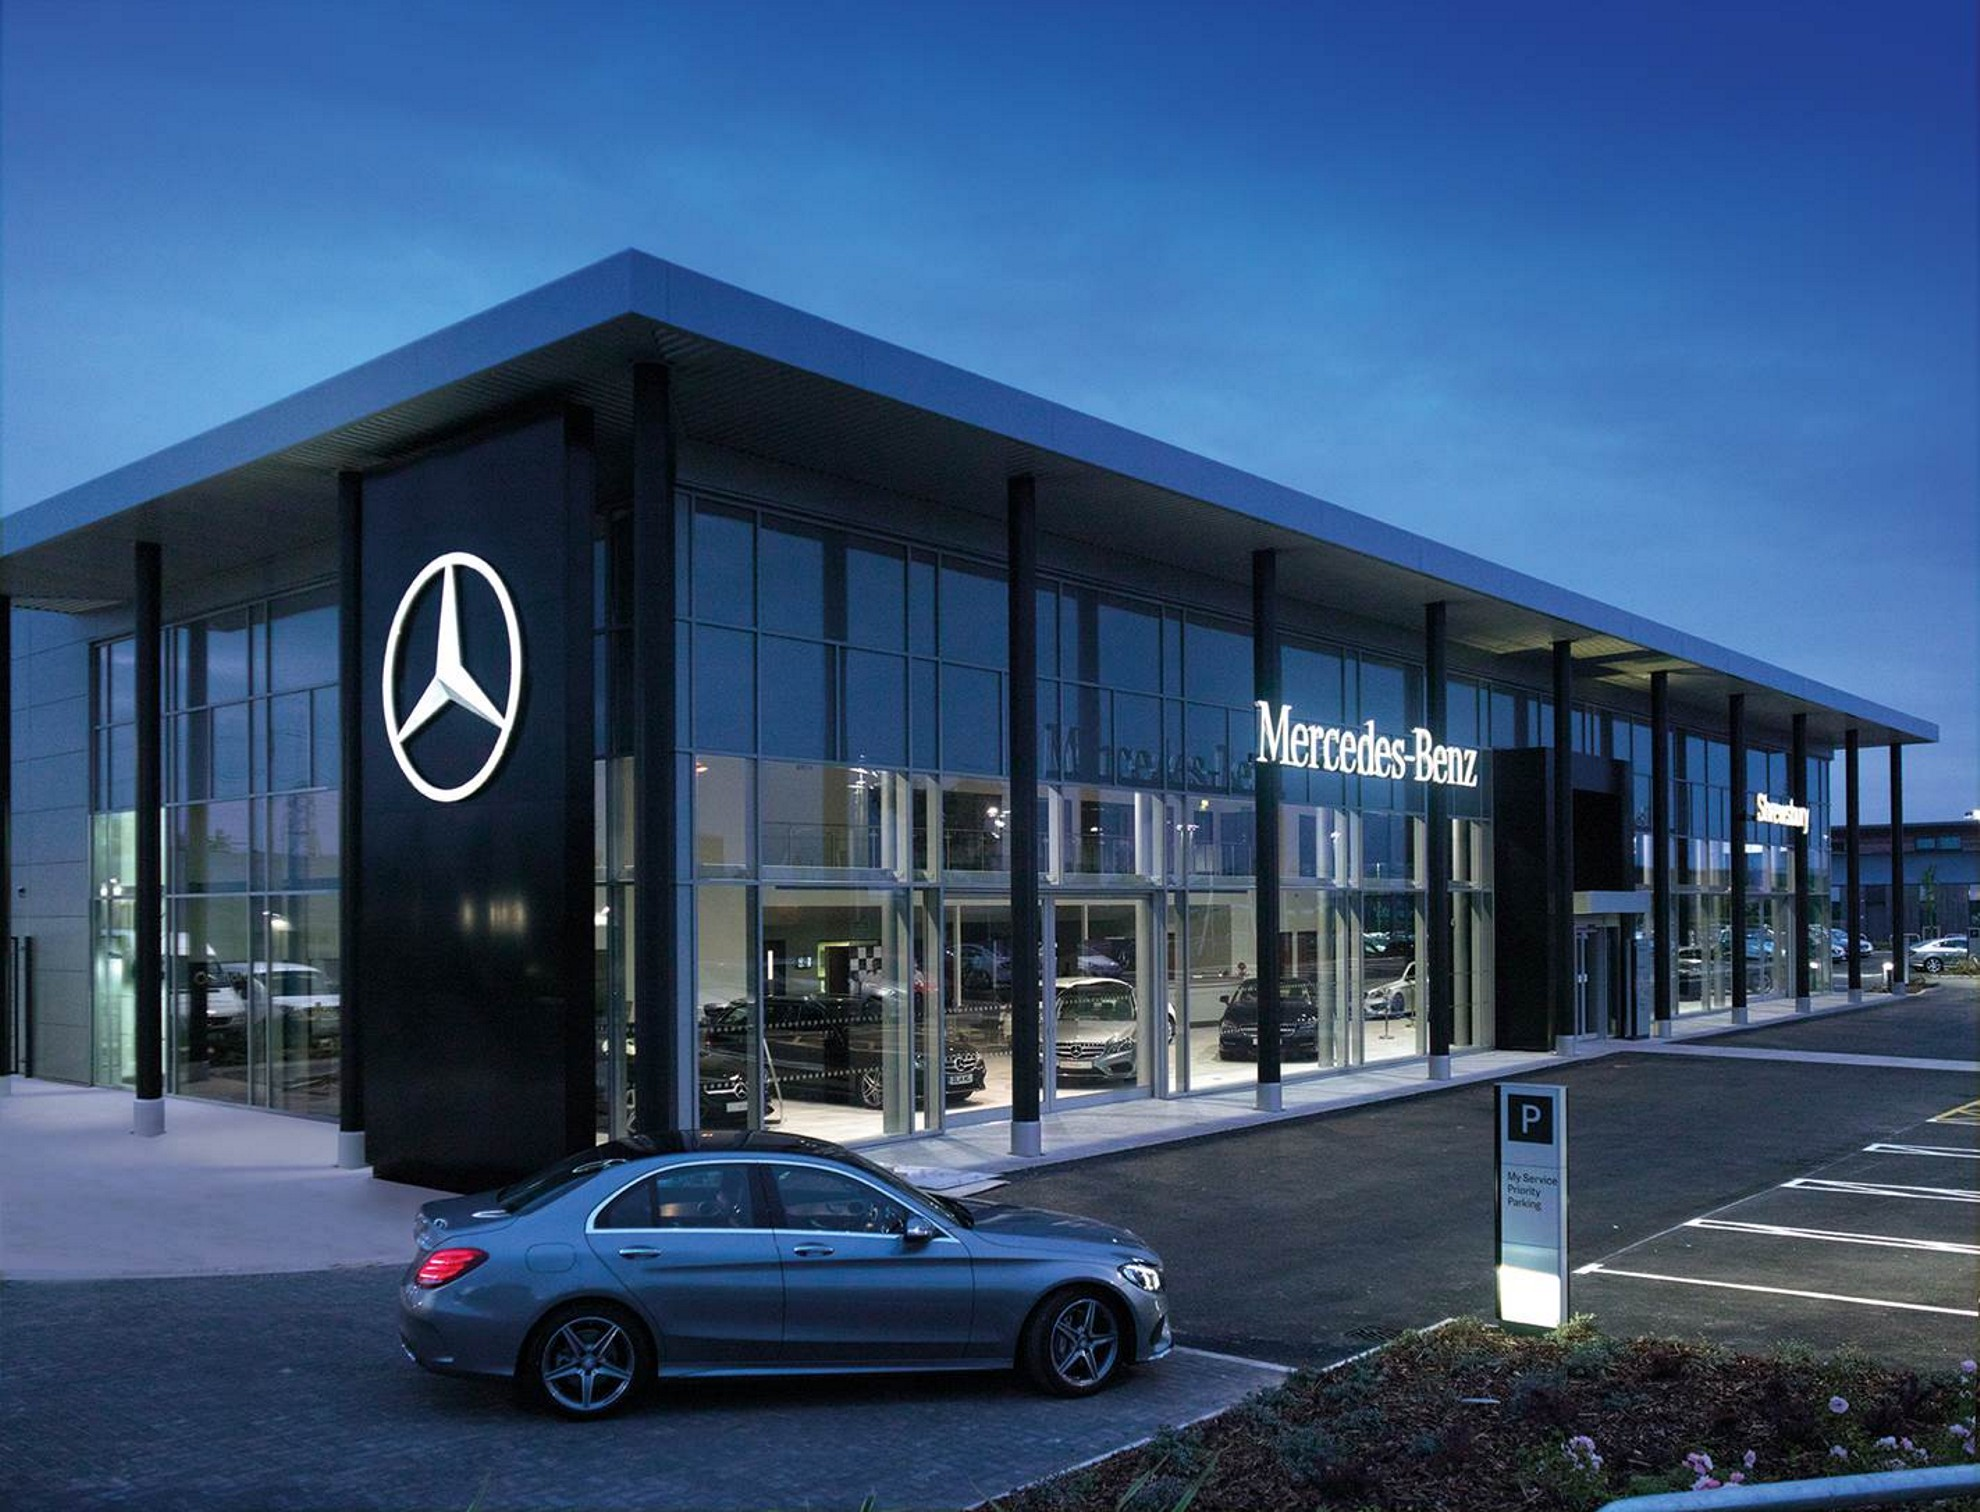 new generation of Mercedes Benz dealer has been revealed for the